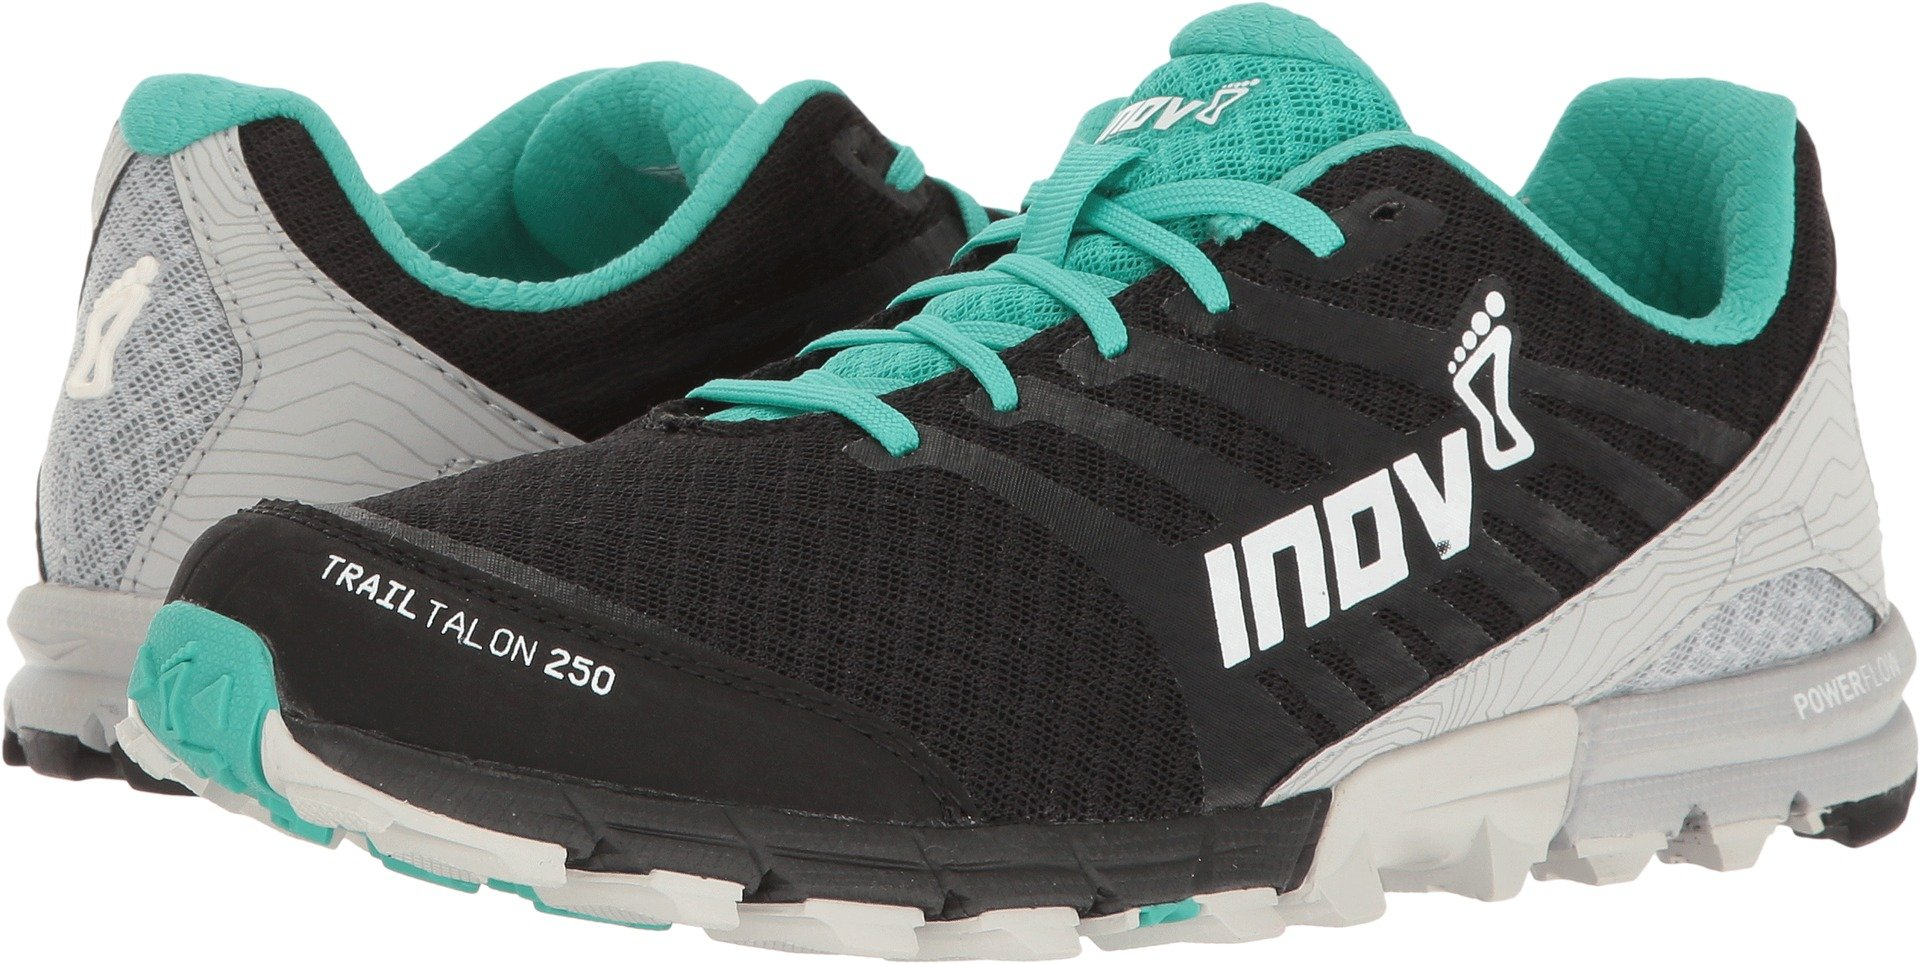 Inov-8 2017 Women's Trailtalon 250 Trail Running Shoe - Black/Teal/Light Grey - 000139-BKTLLG-S-01 (Black/Teal/Light Grey - M4.5/W6)